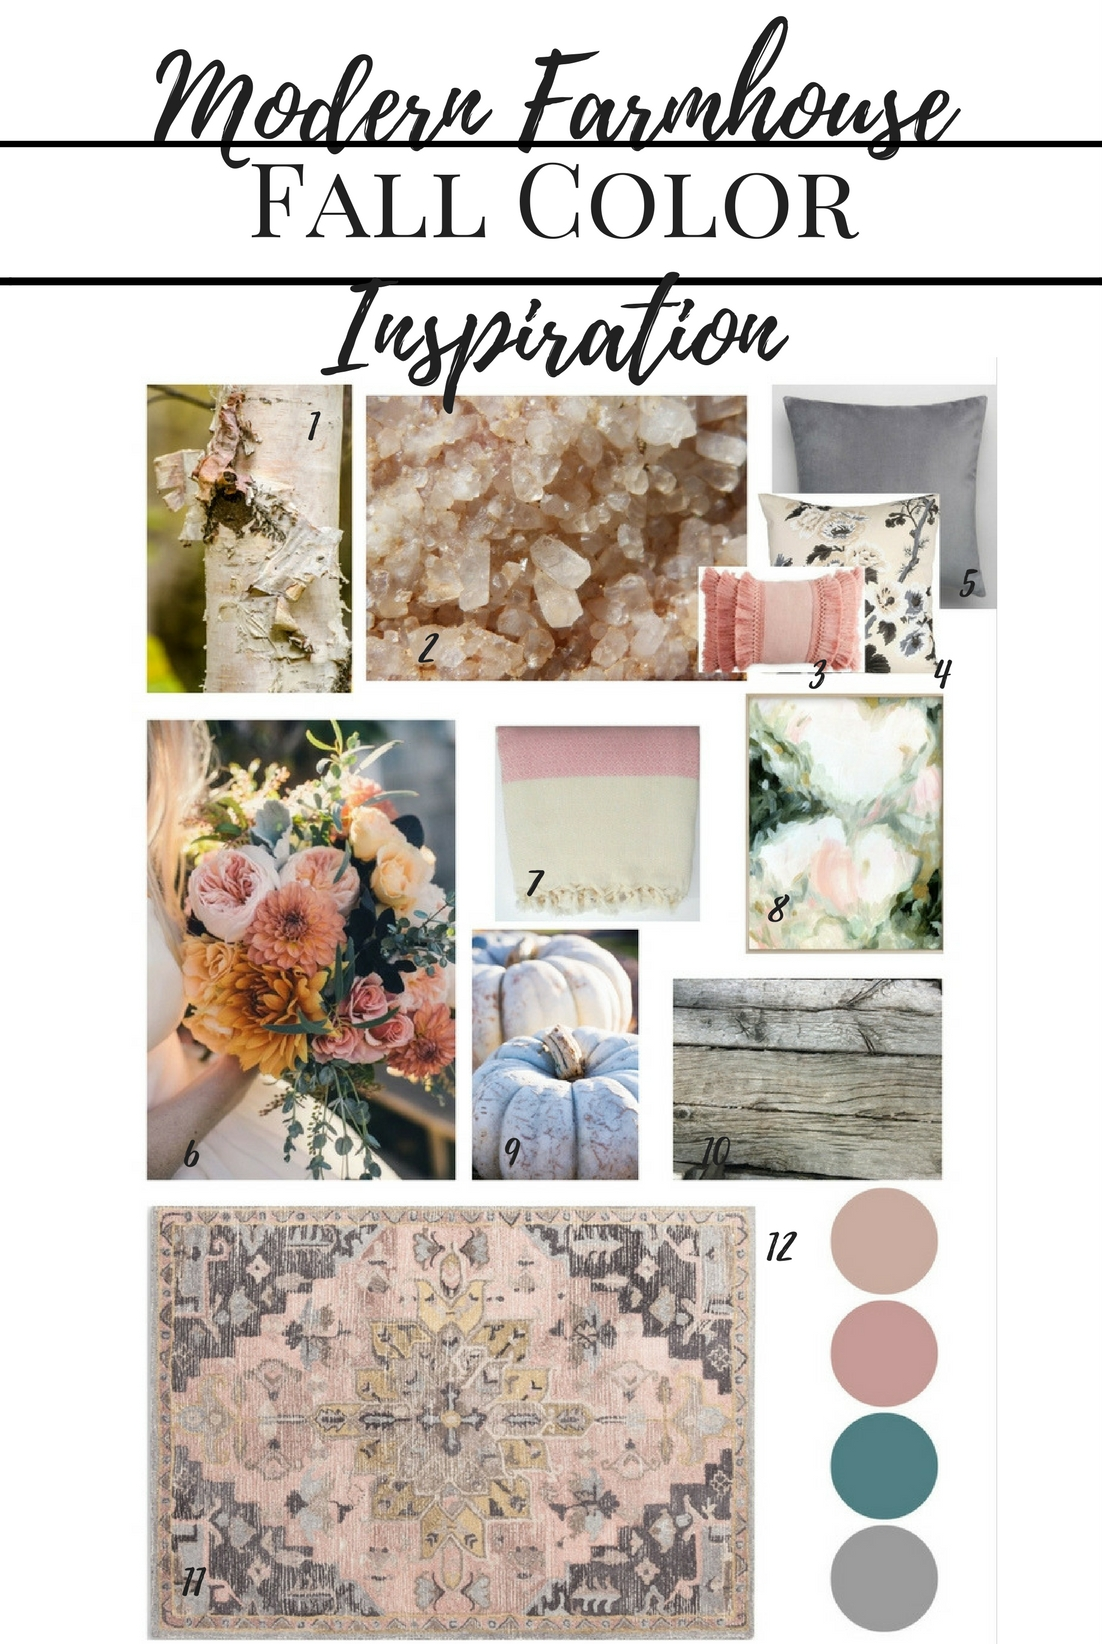 Modern Farmhouse Fall Color Inspiration